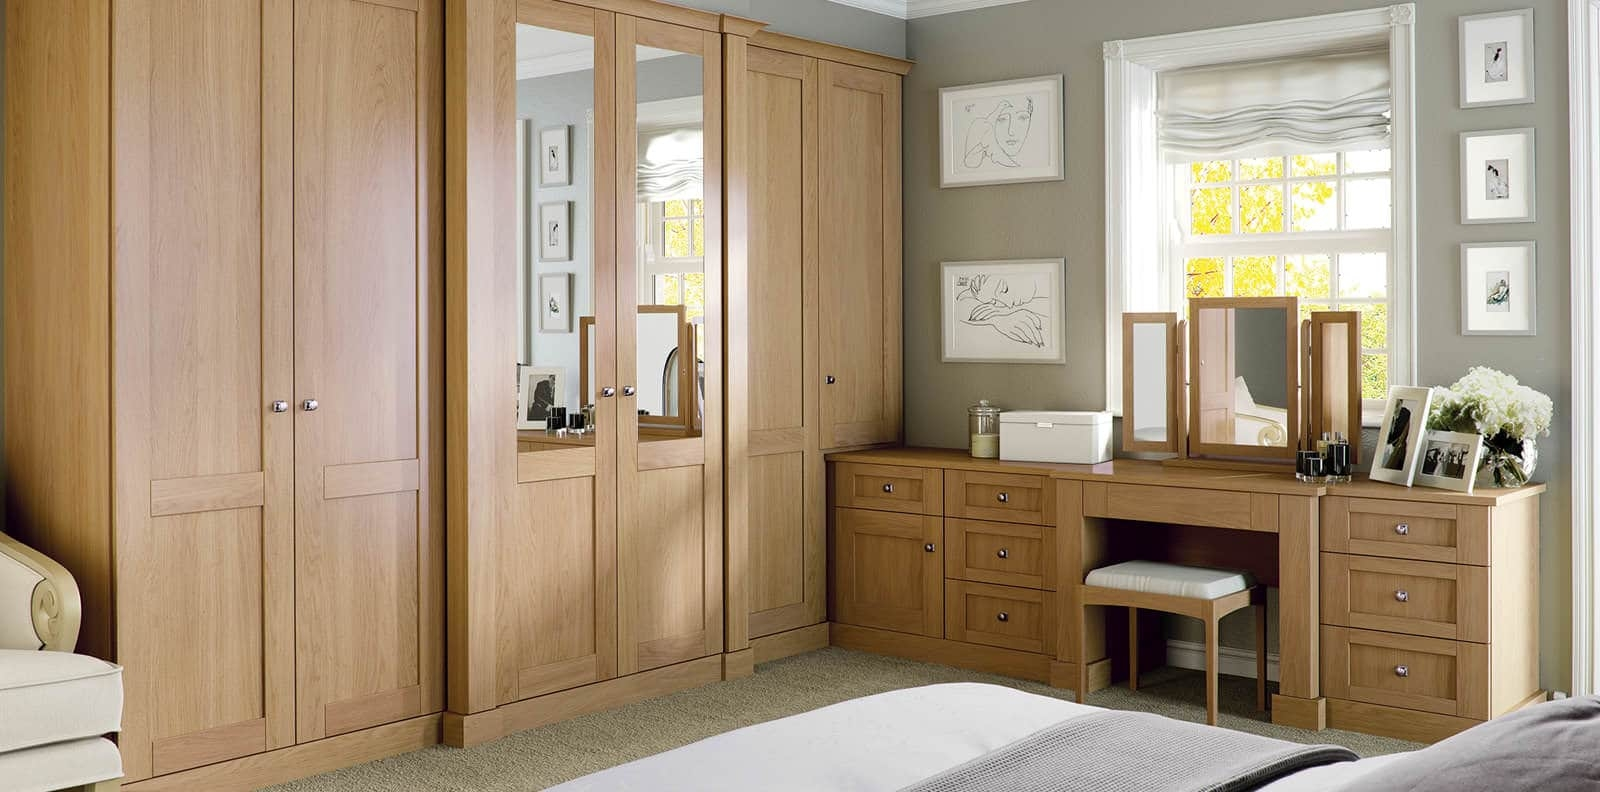 Luxury Fitted Bedroom Furniture Wardrobes Strachan Pertaining To Fitted Cabinets (Image 15 of 15)